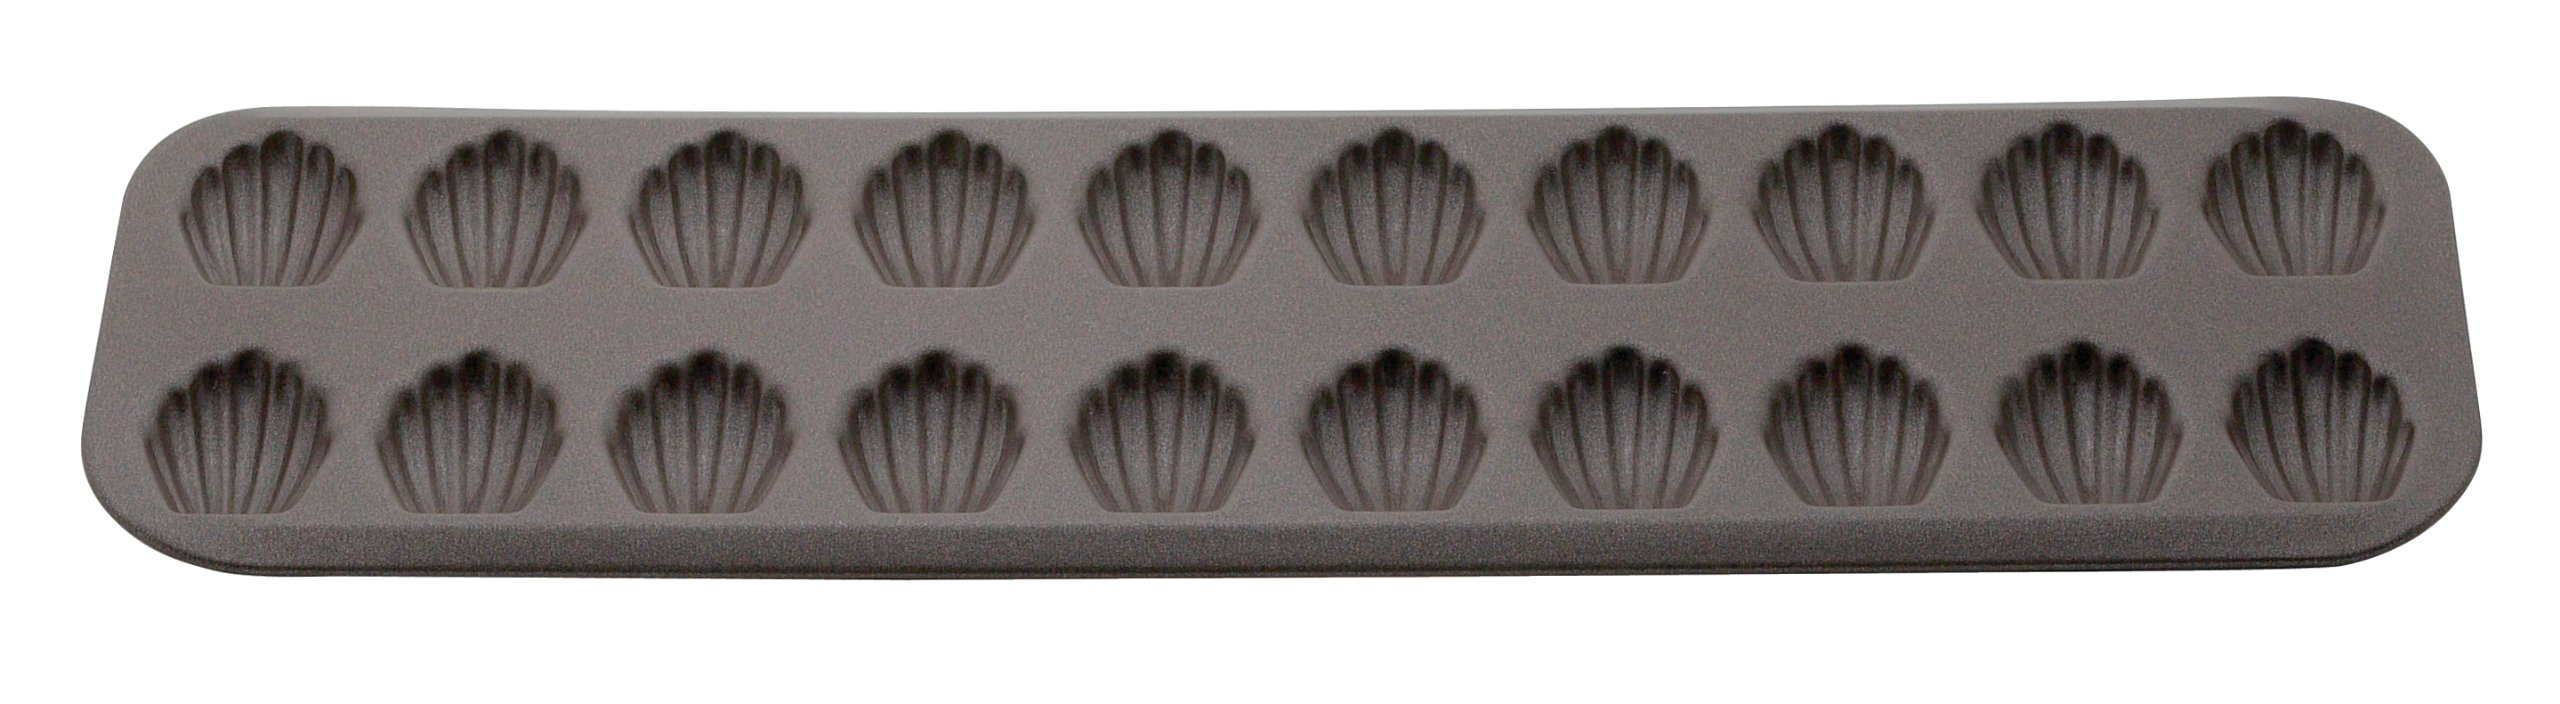 Gobel Mini Non-Stick Madeleine Pan, 15.5 by 5 Inch, Made in France